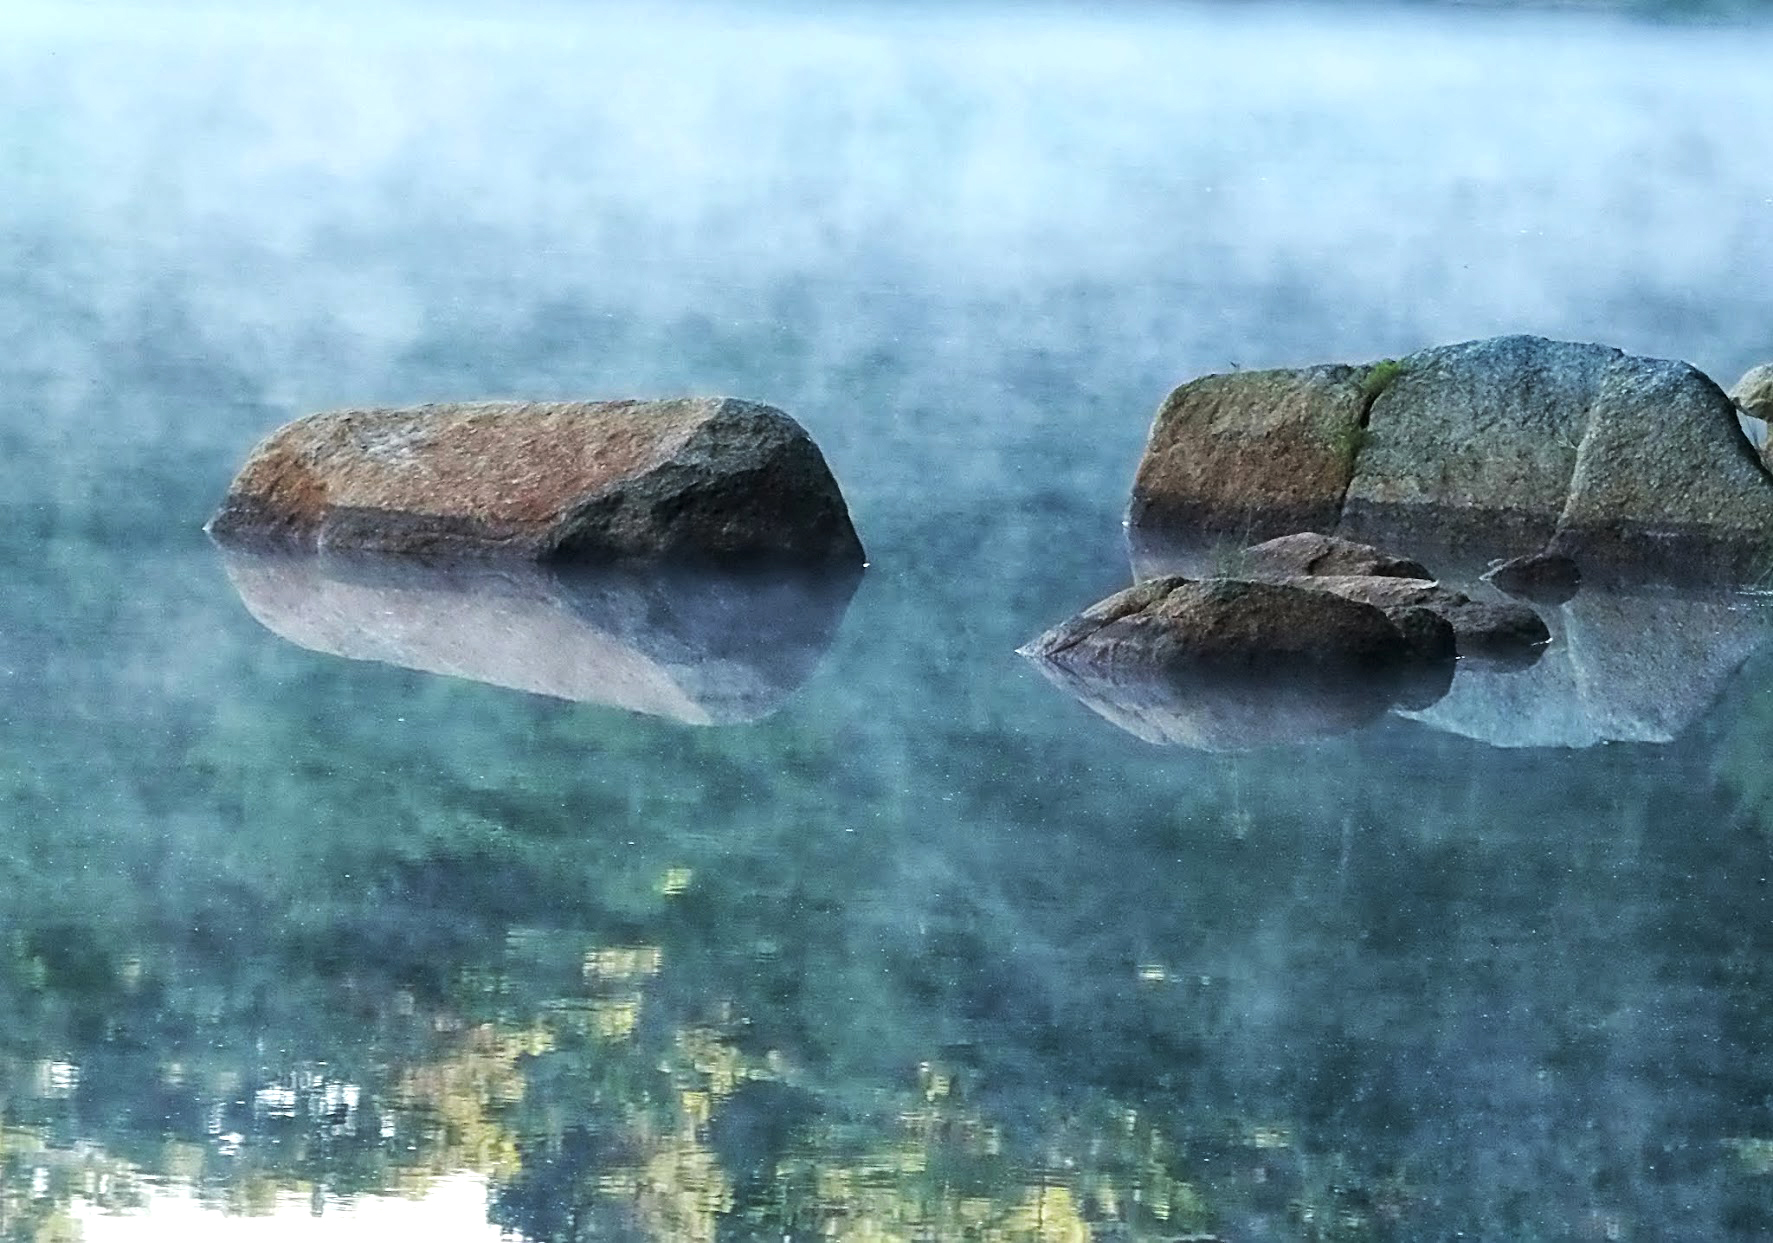 mist covered rocks at Widgeon Pond